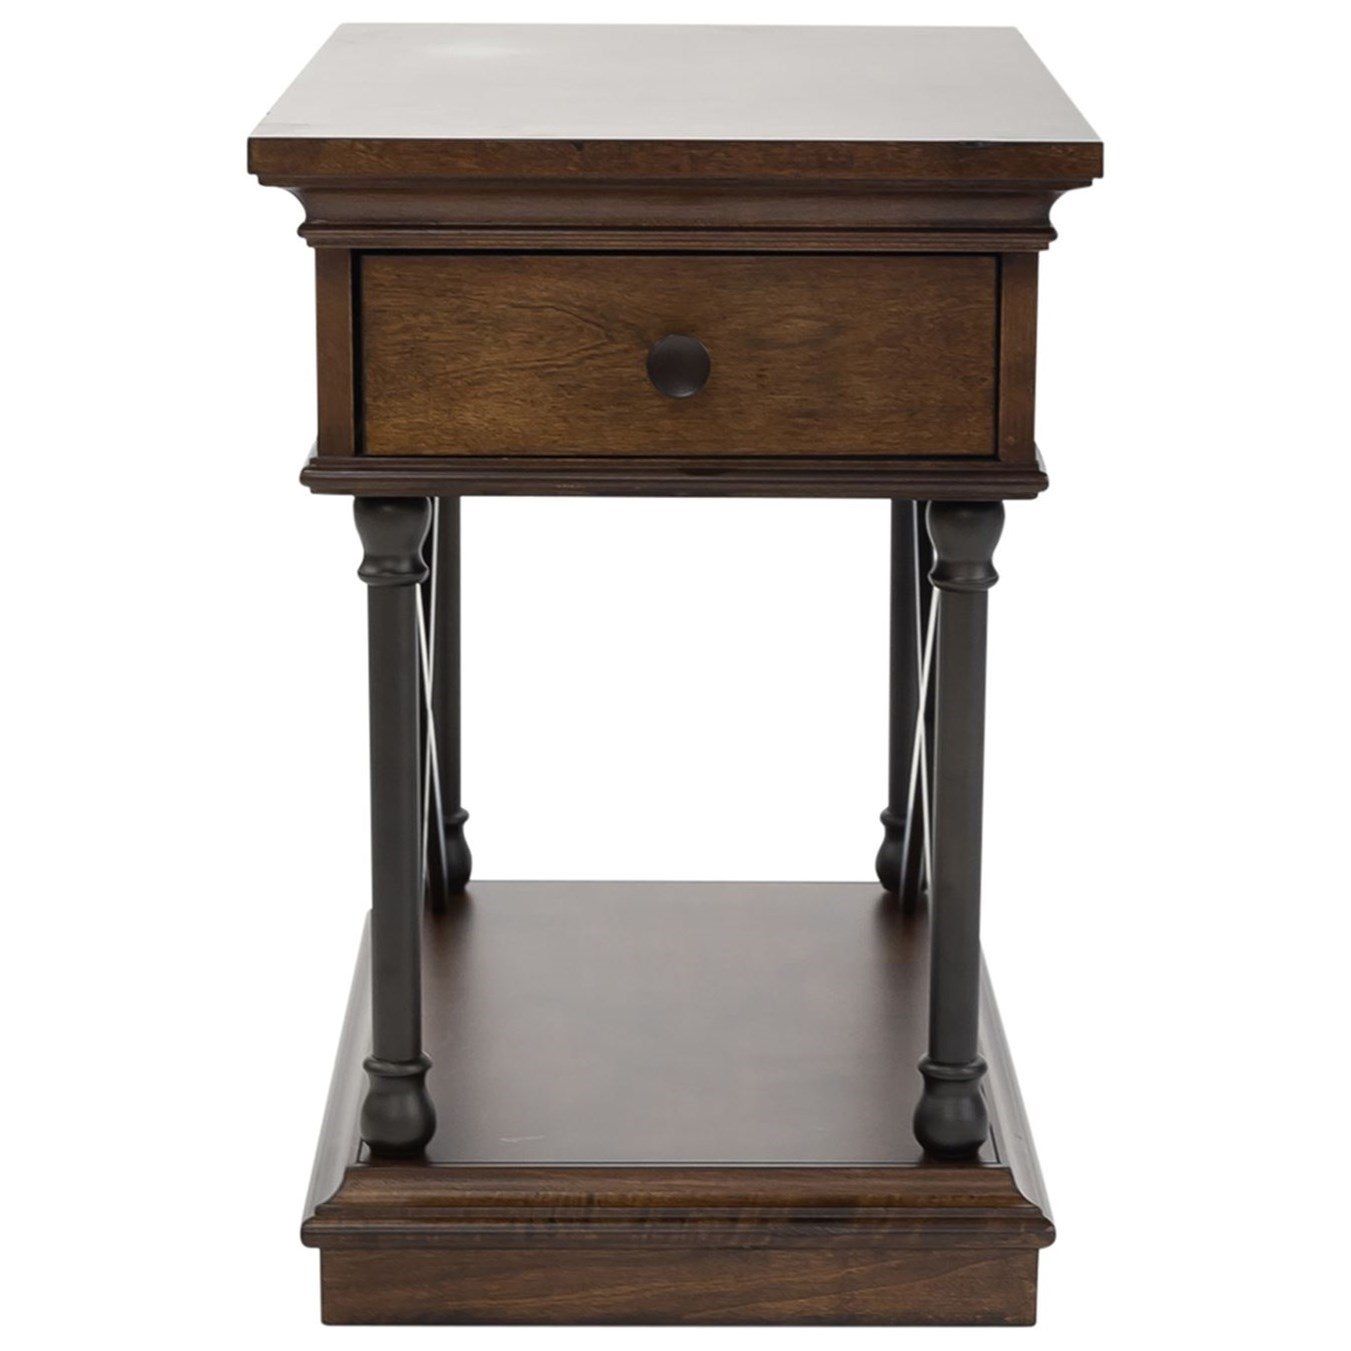 Tribeca Drawer Chair Side Table by Libby at Walker's Furniture